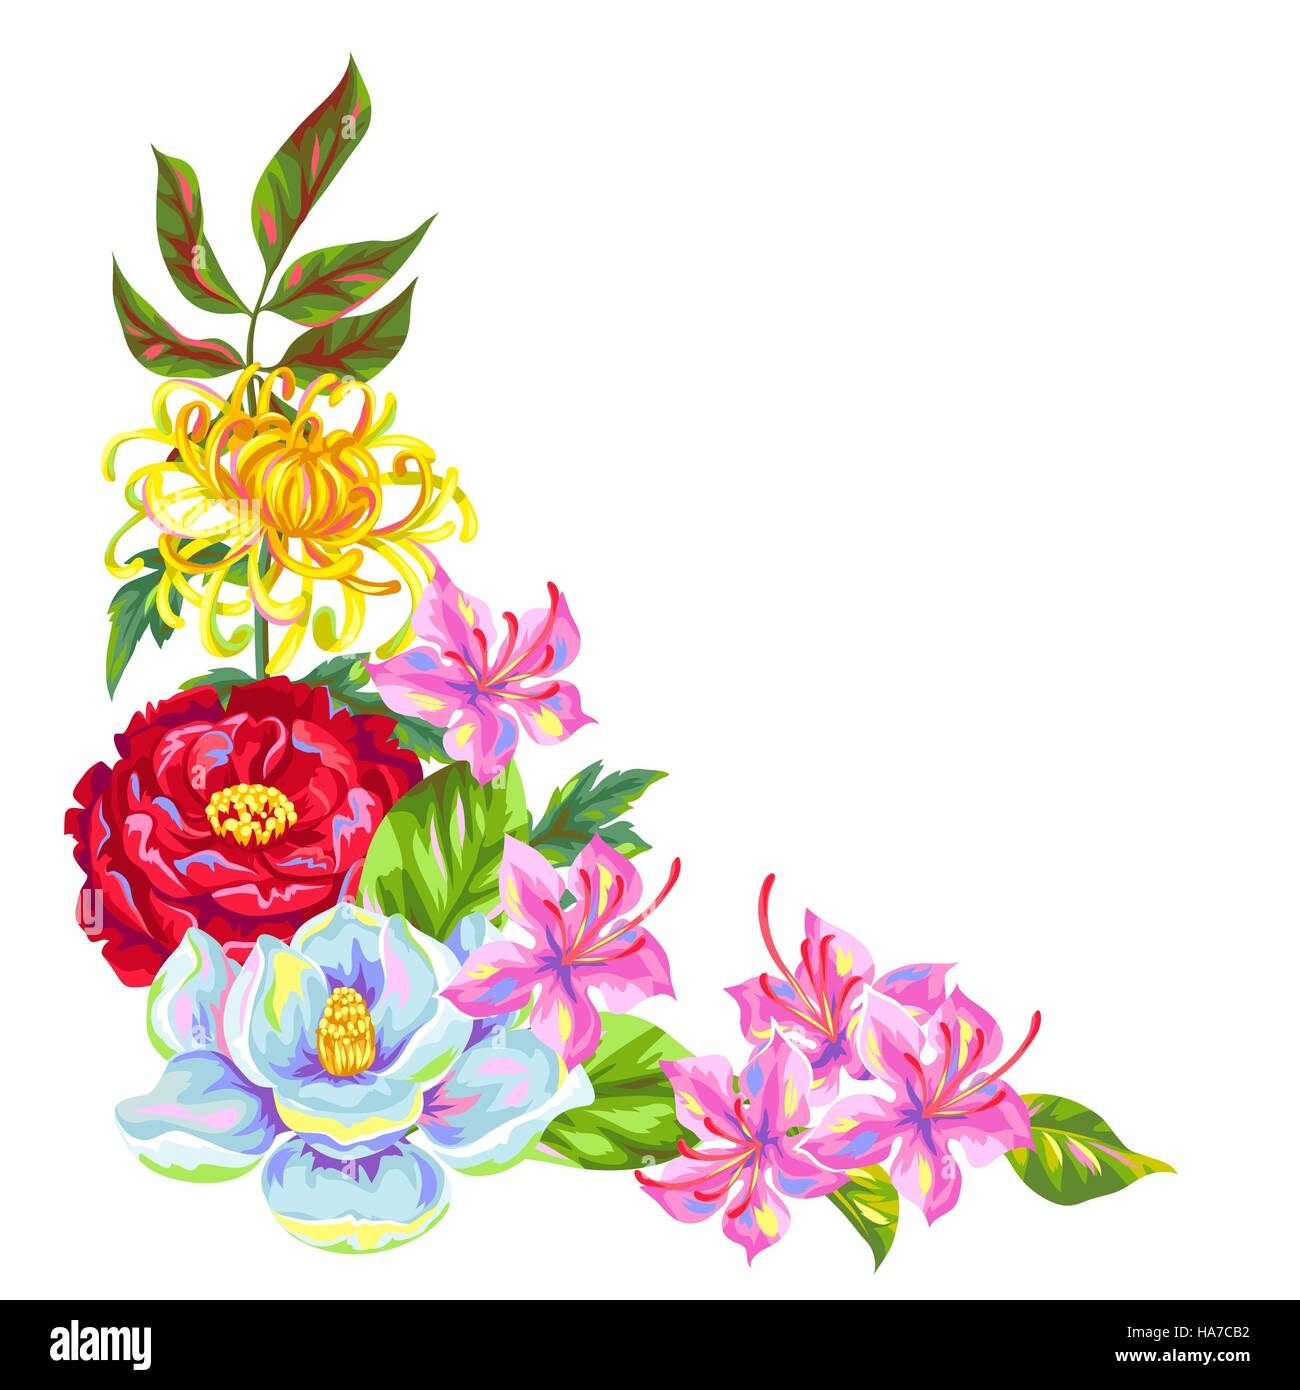 Decorative element with China flowers. Bright buds of magnolia, peony, rhododendron and chrysanthemum - Stock Vector